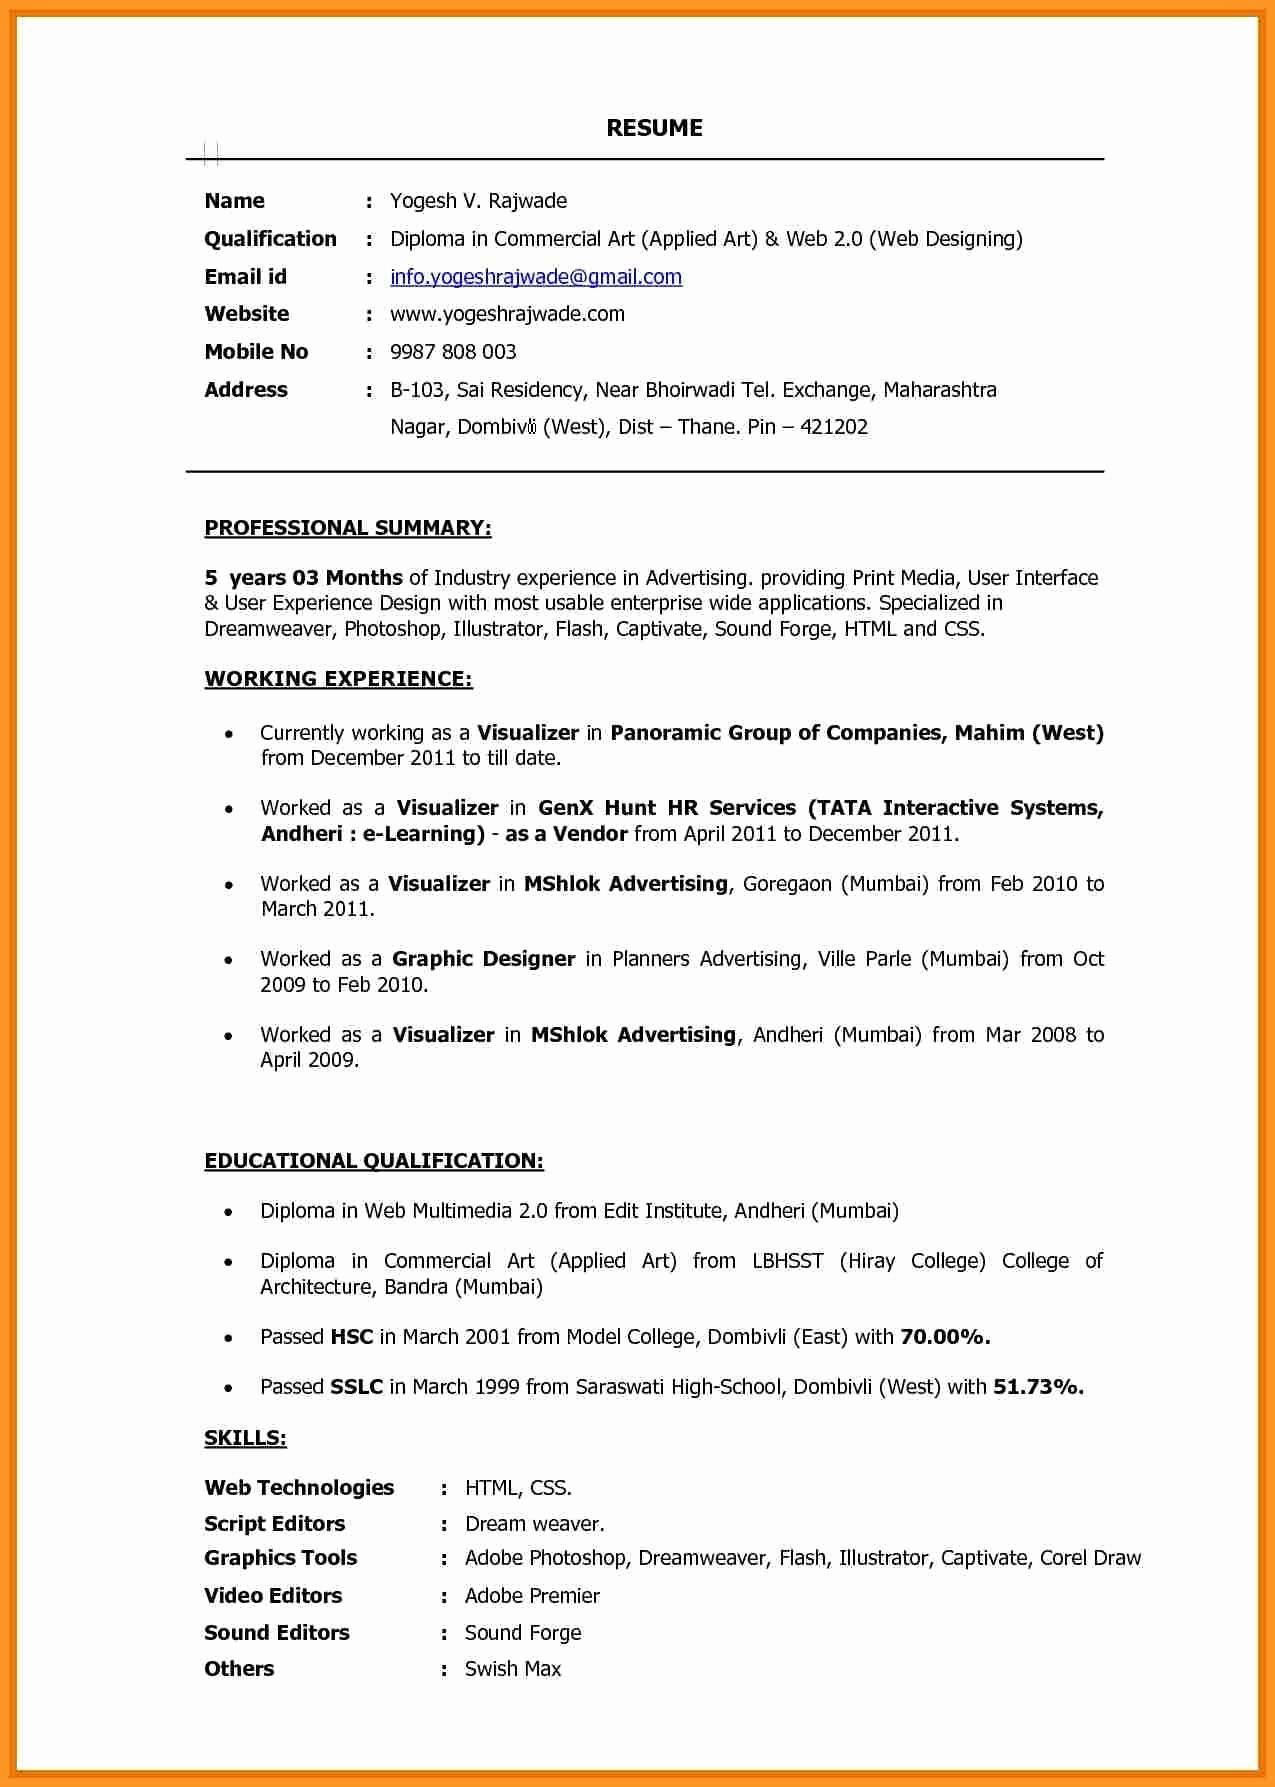 Advertising Resume Template - 34 Lovely Captivate Templates